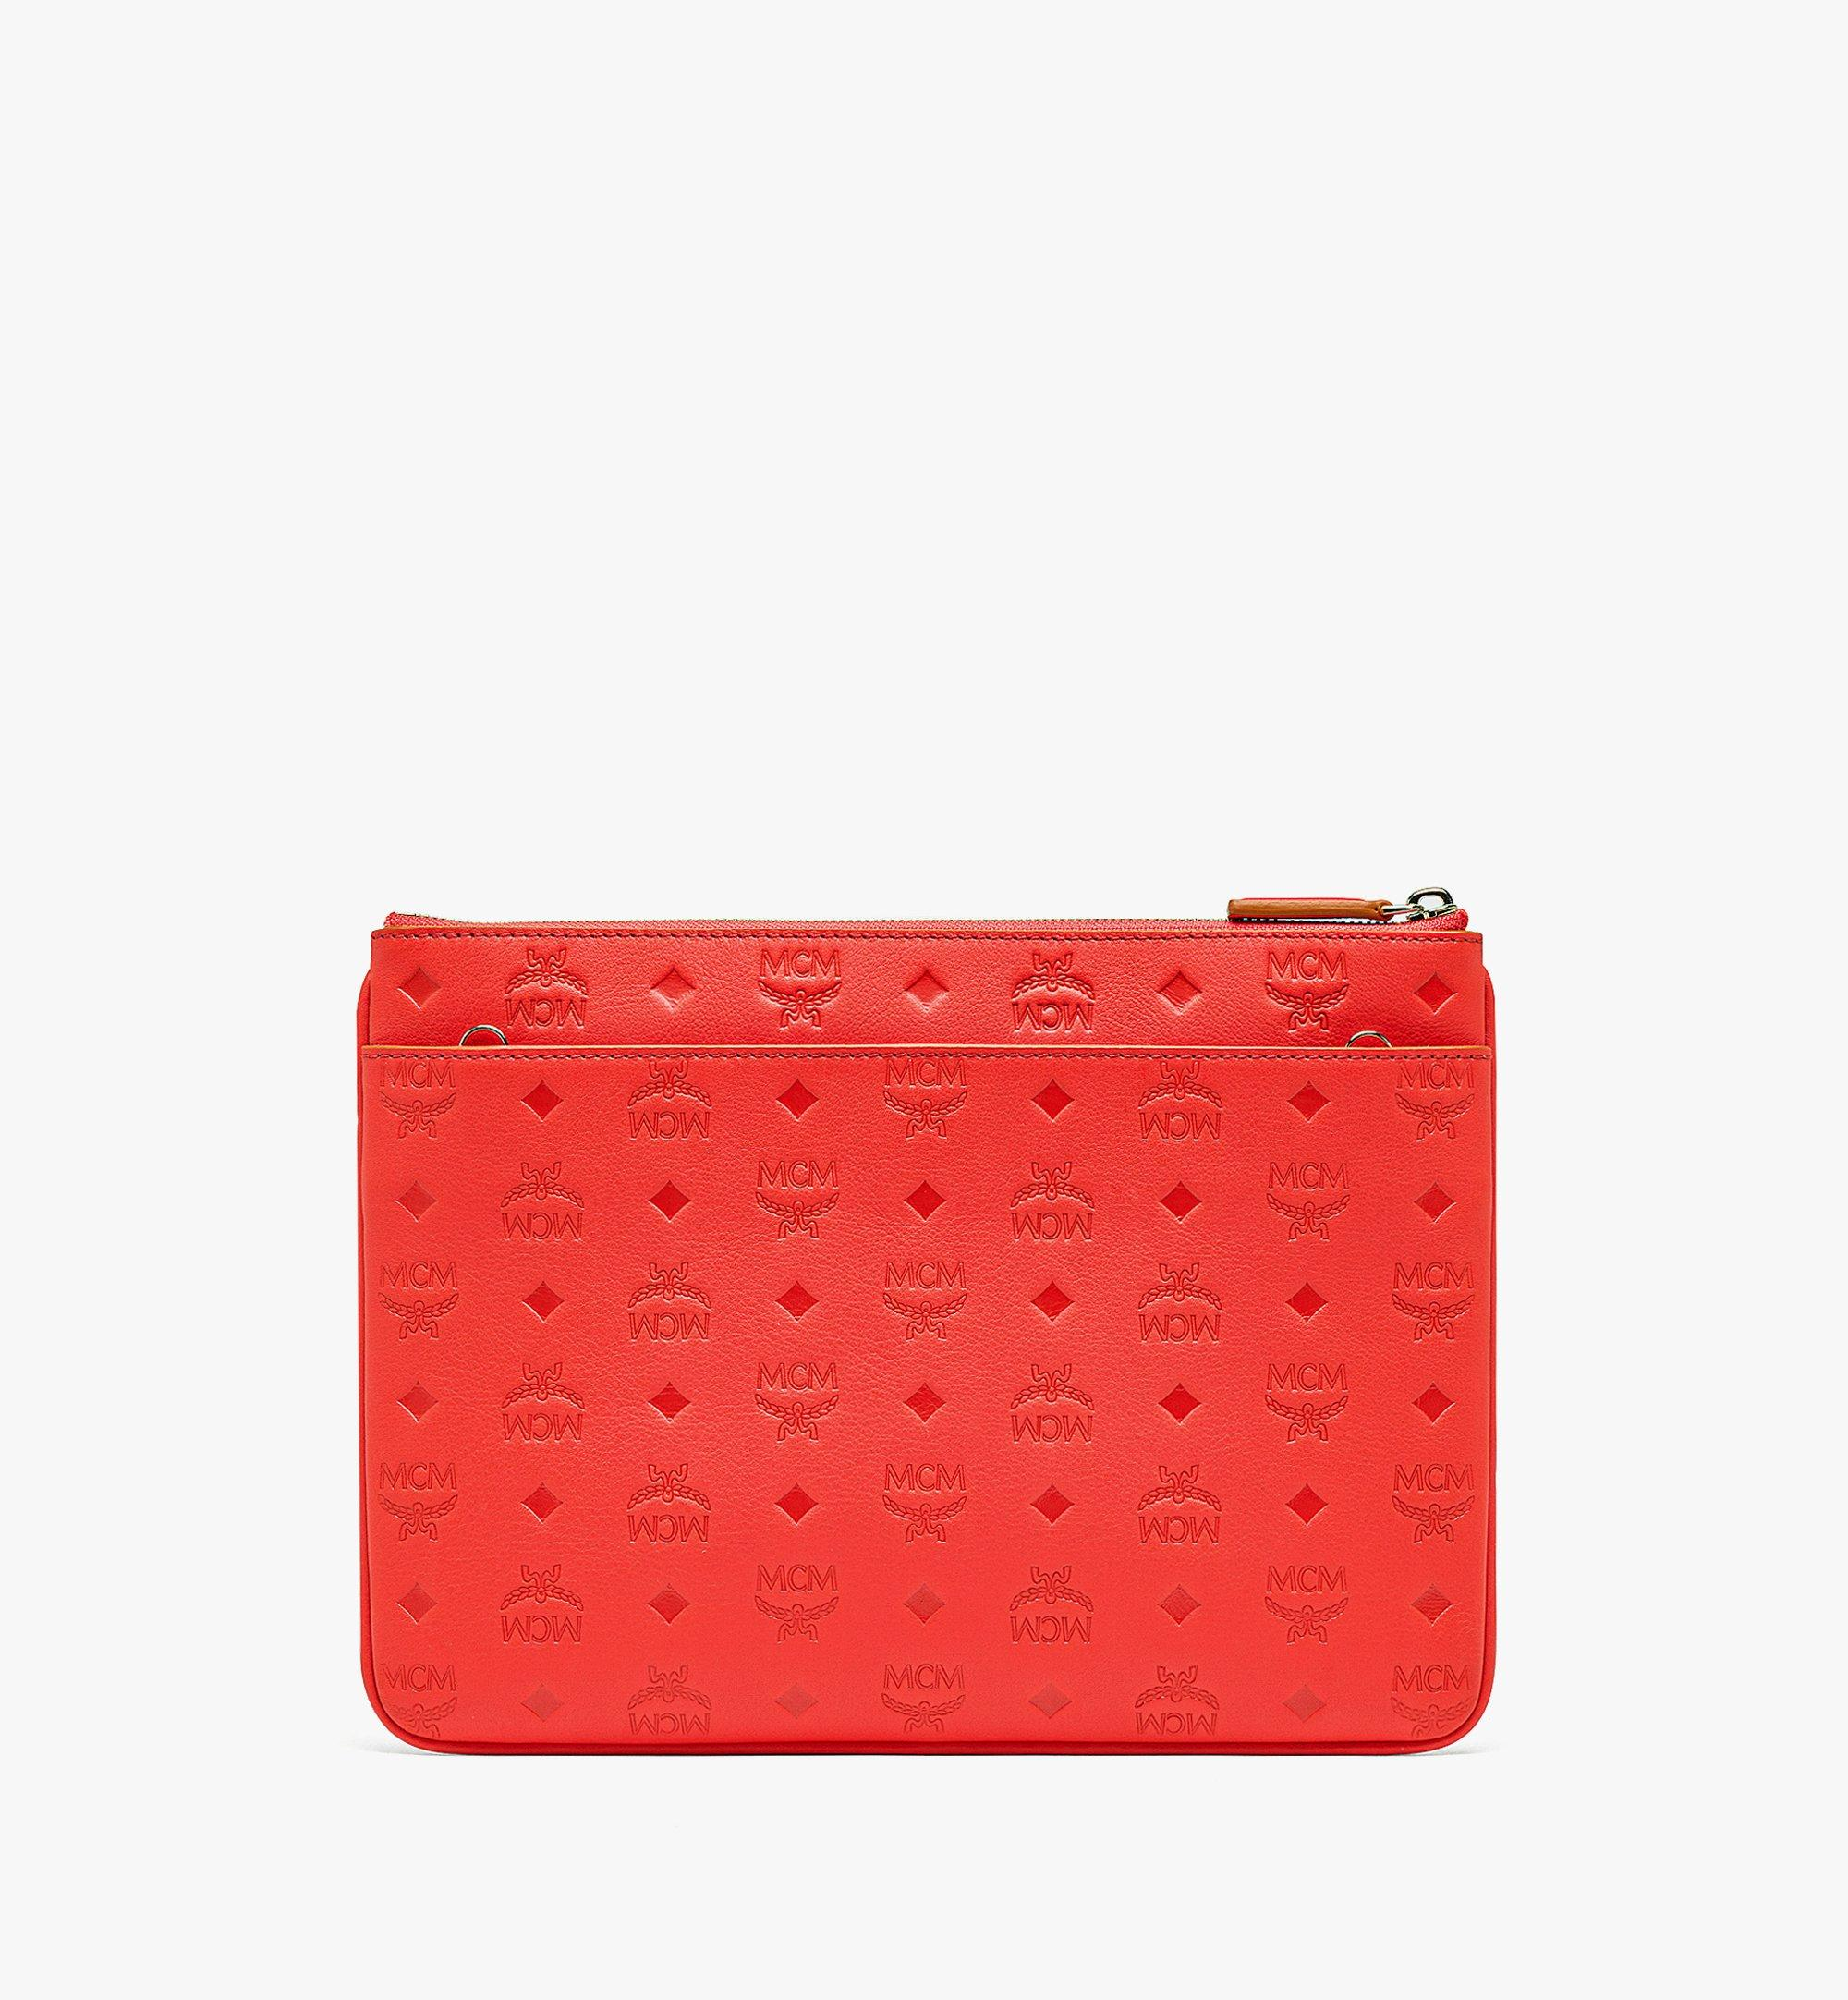 MCM Crossbody Pouch in Monogram Leather Red MYZBSKM03R8001 Alternate View 2